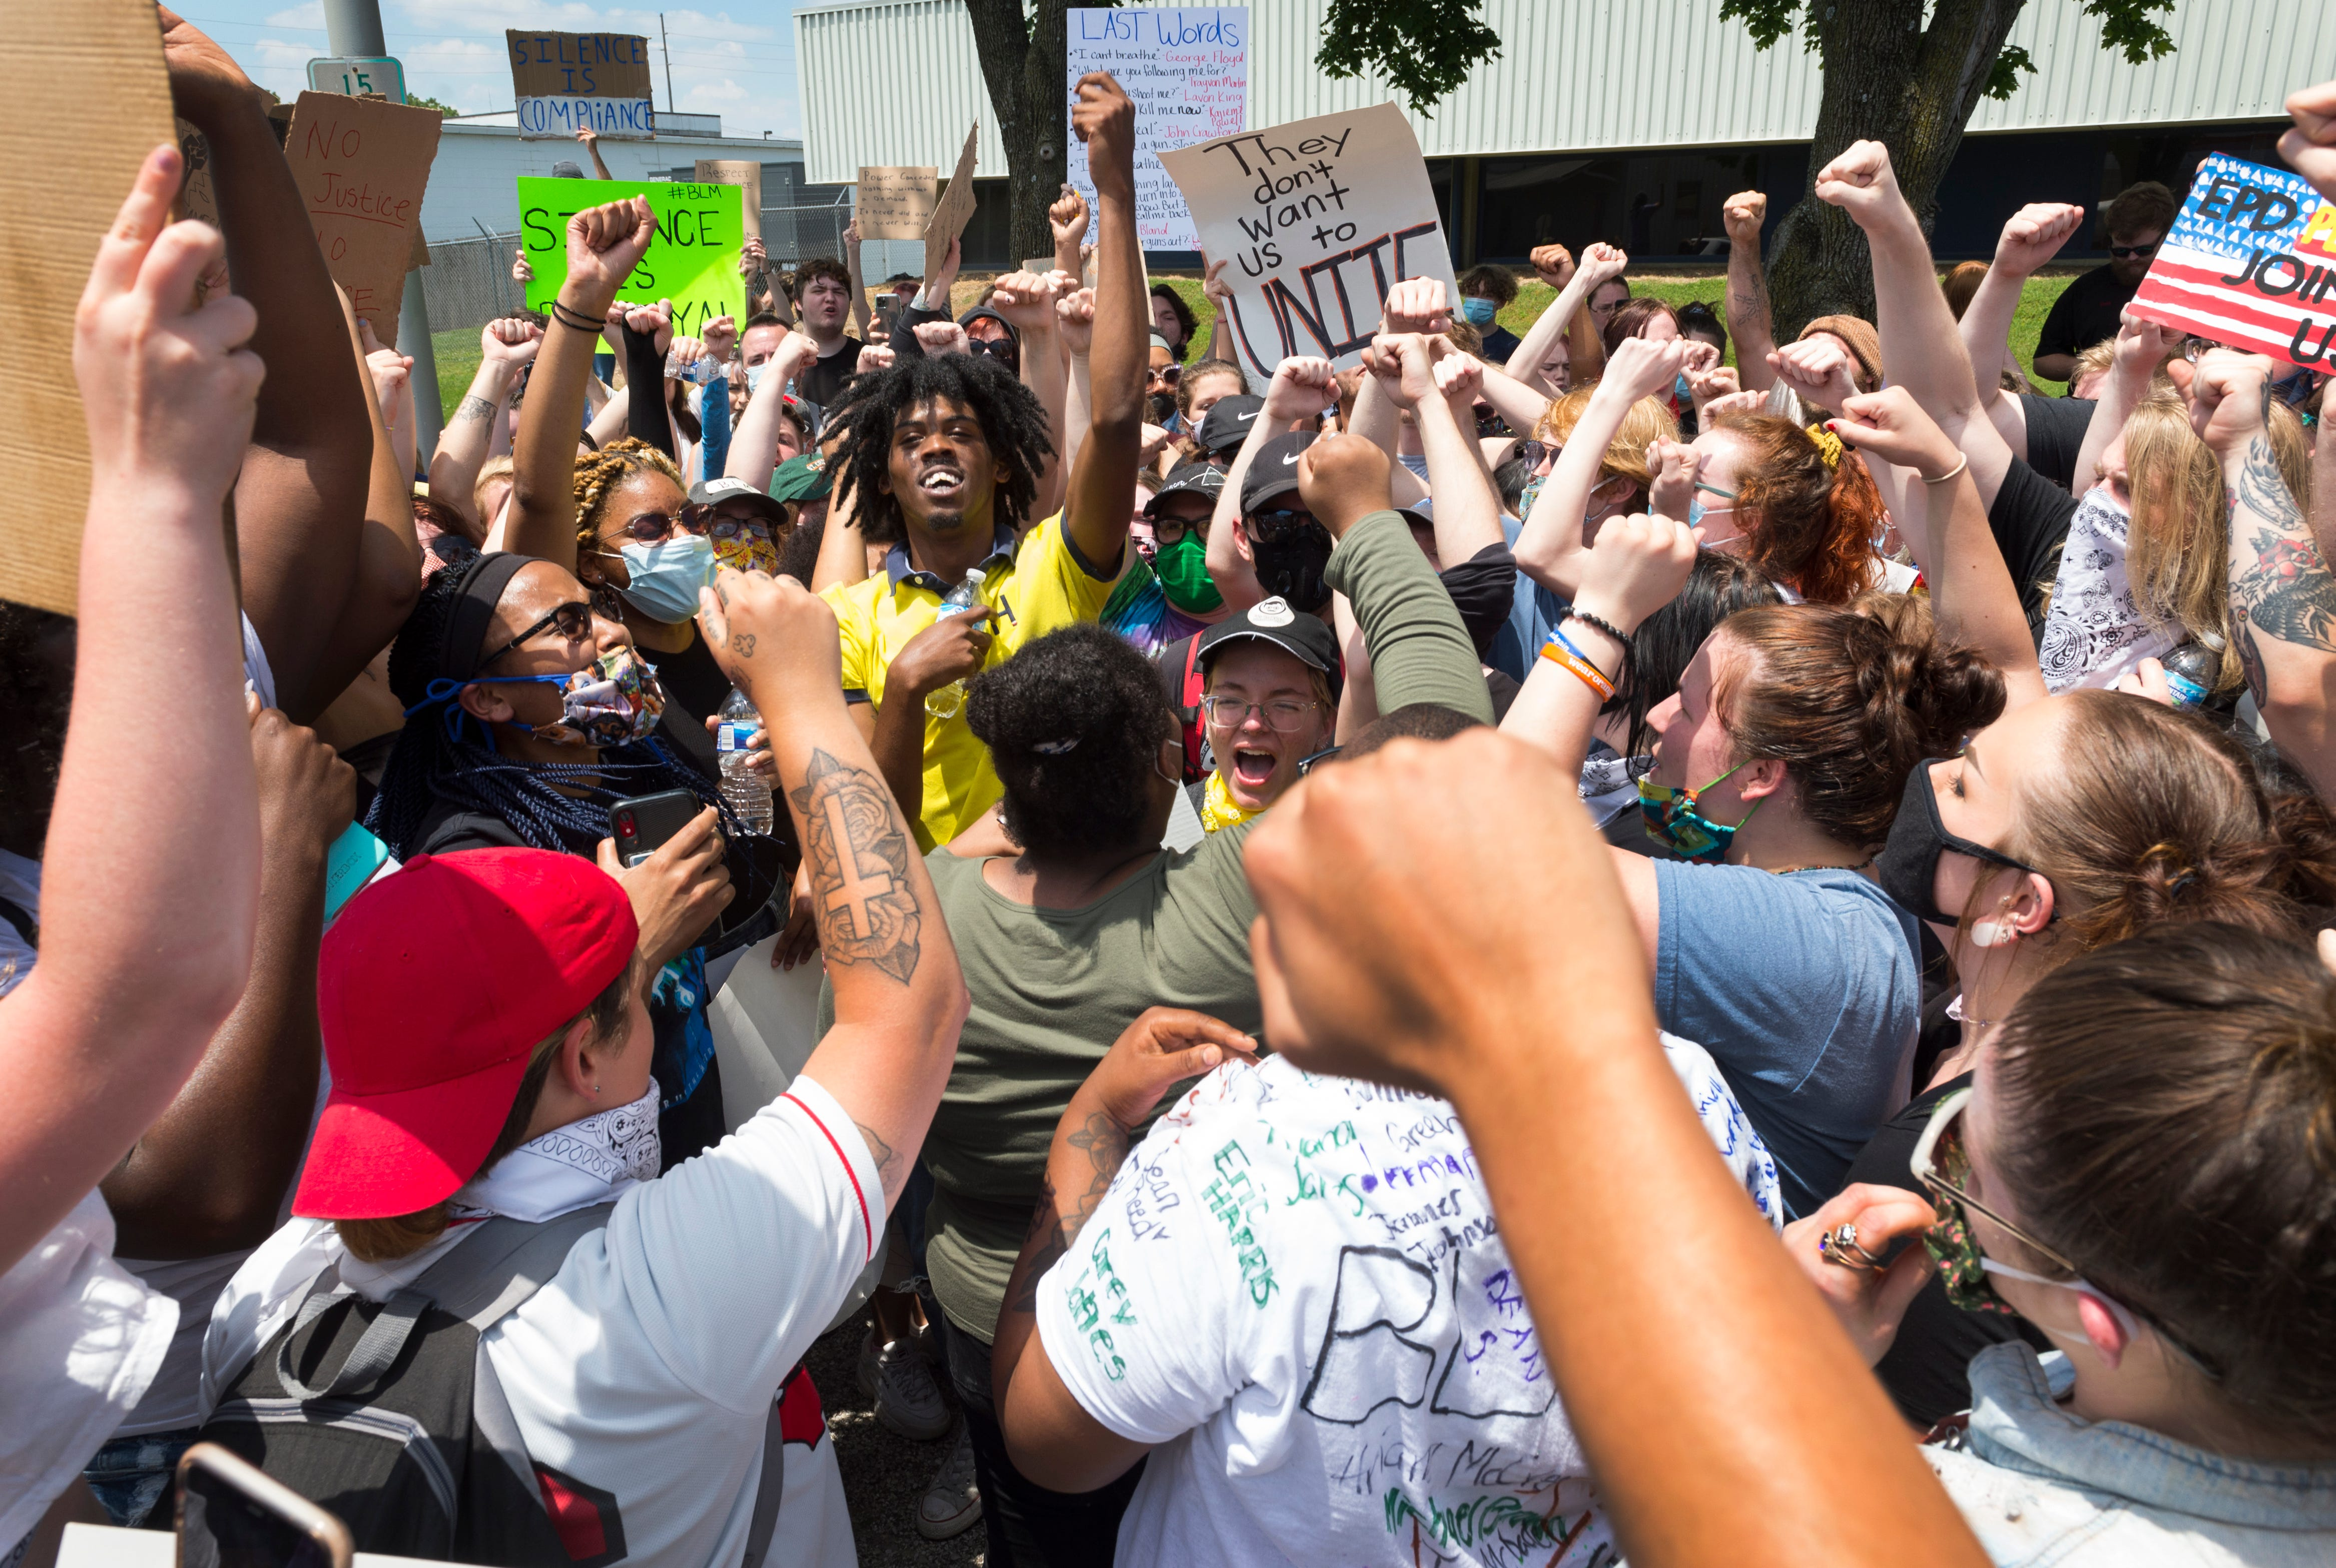 """Protesters gather in a group as they chant """"Unity is power"""" off Carpenter Street in Downtown Evansville, Ind., Wednesday afternoon, June 3, 2020."""